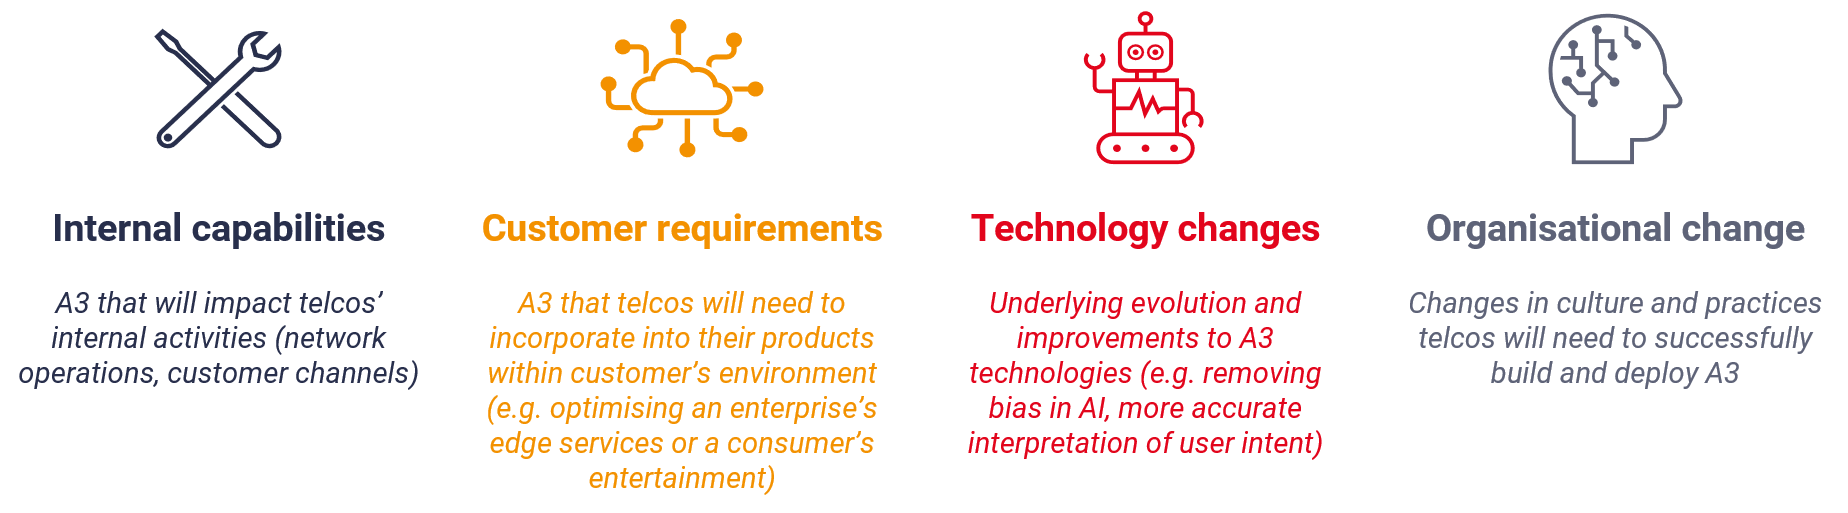 four A3 areas impacting telcos